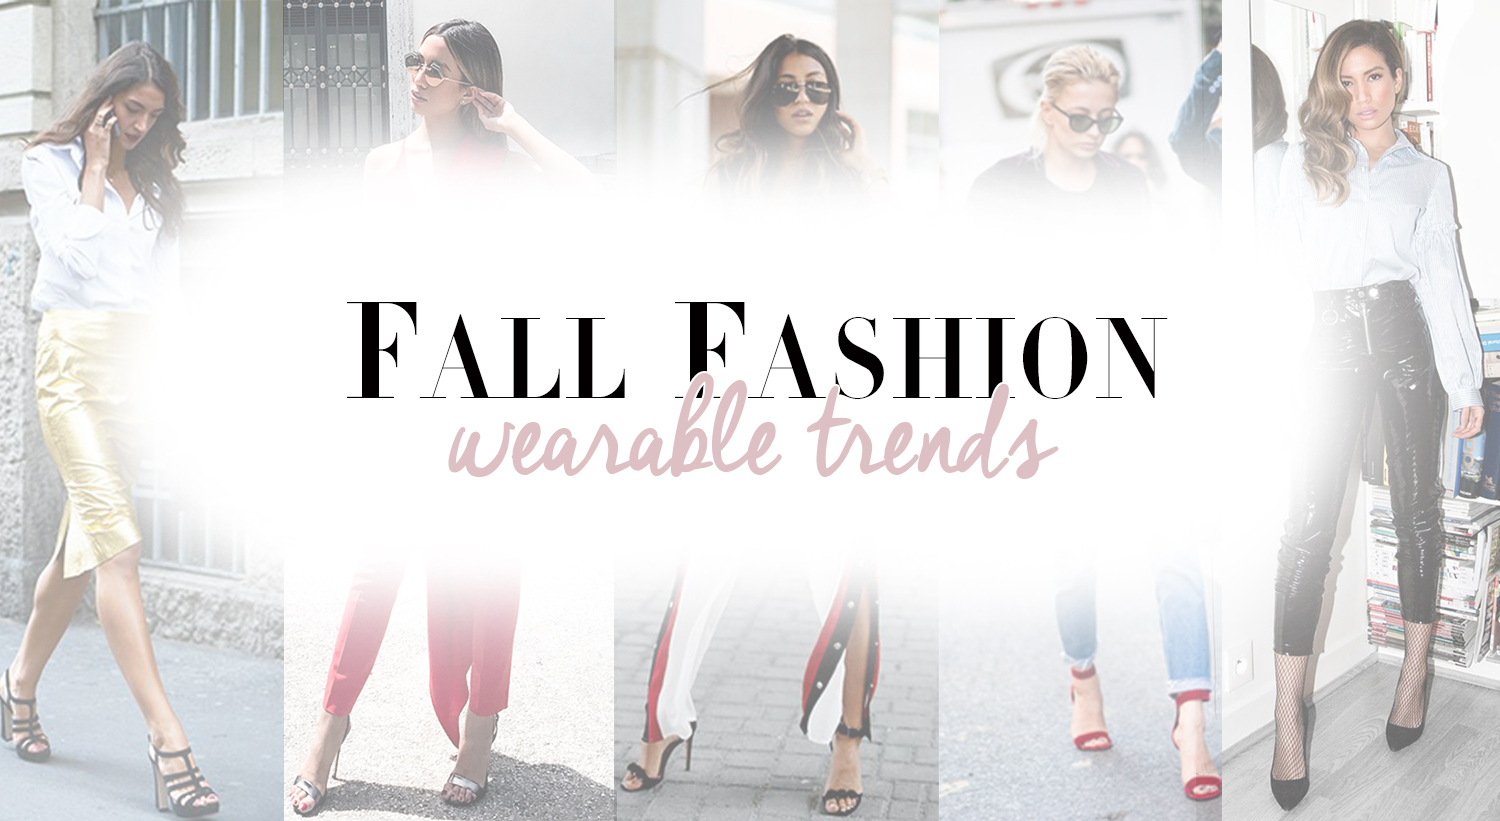 Biggest fashion trends for fall 2017